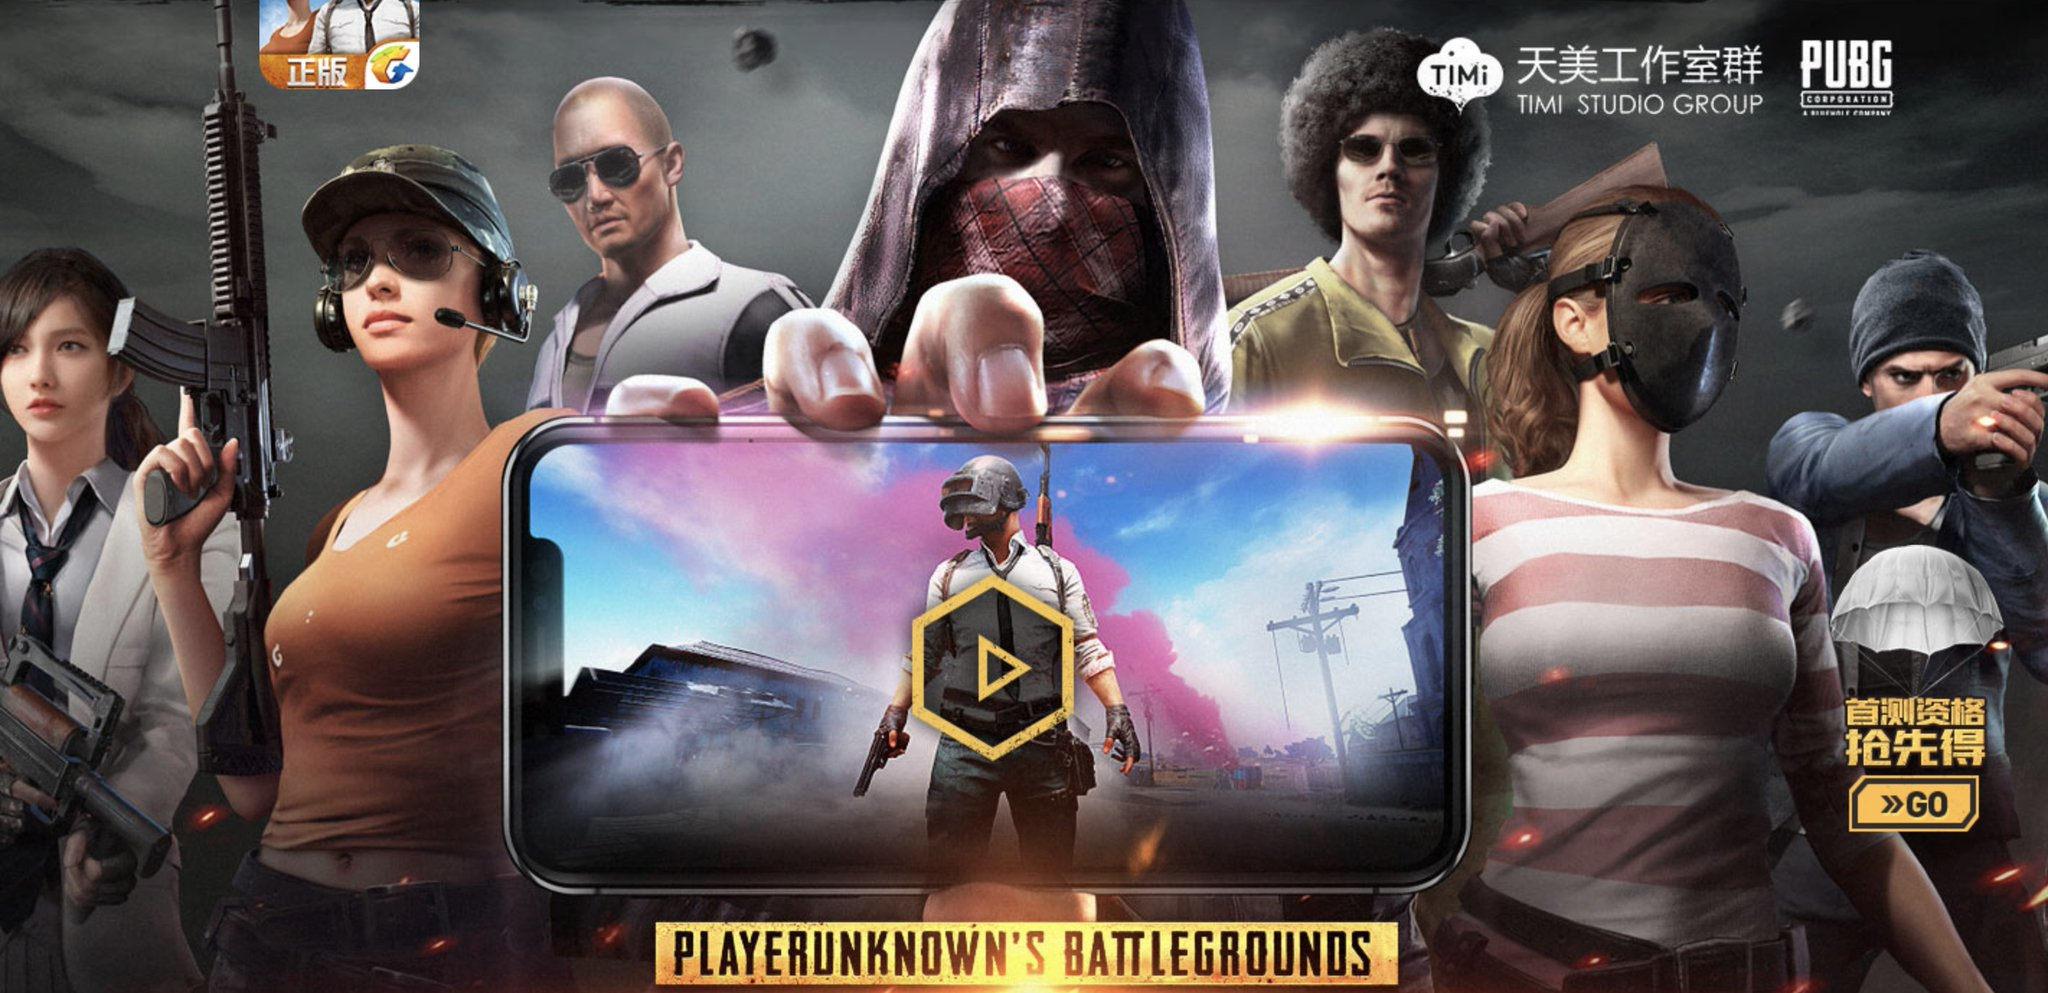 Pubg Mobile Has Been Released For Free In Us And Other: Watch Gameplay From The First Chinese PUBG Mobile Game